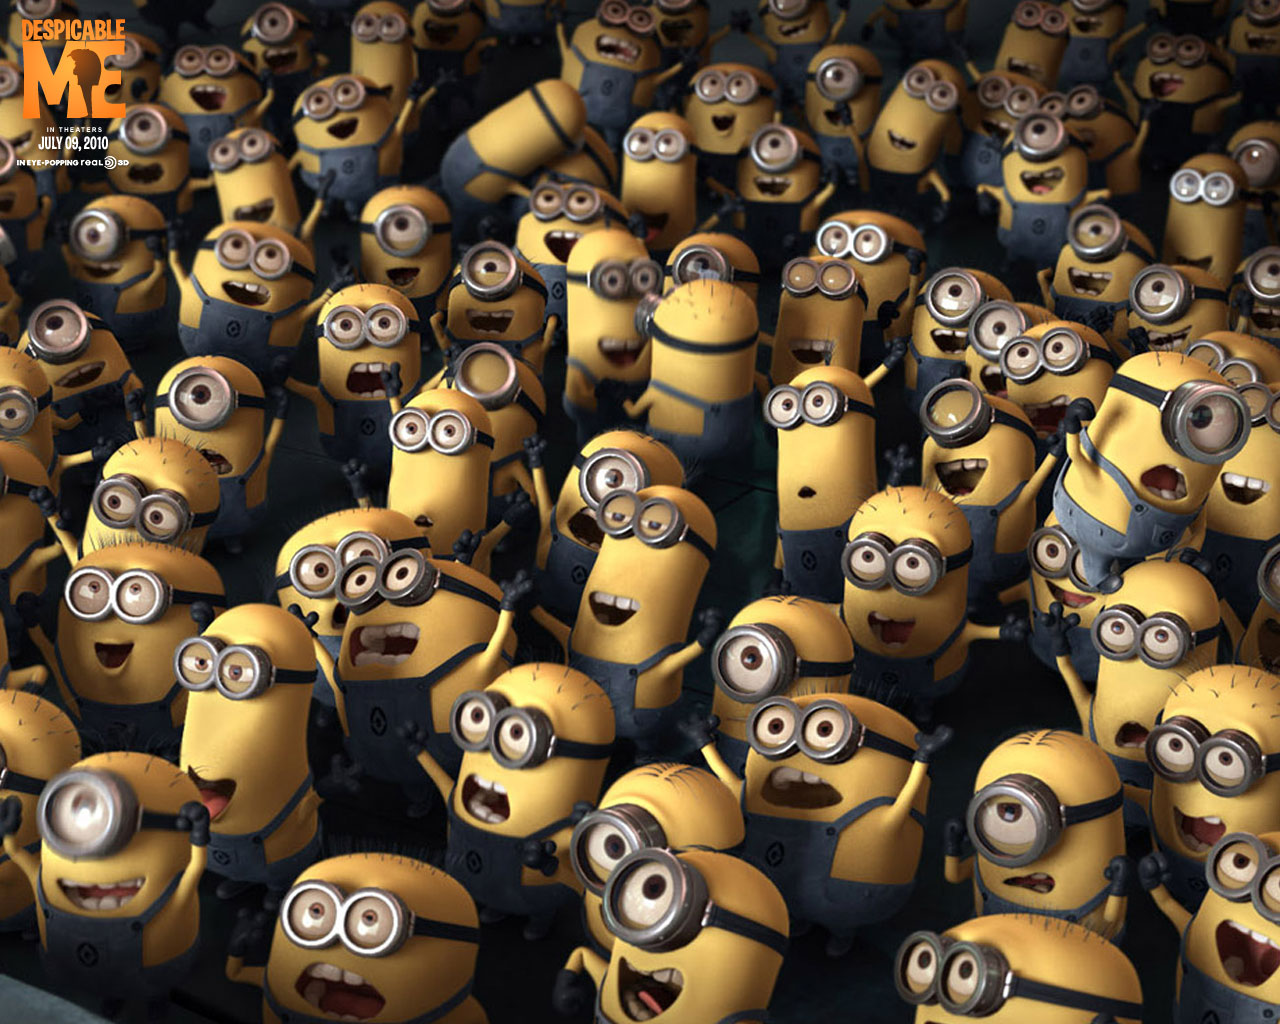 Despicable Me Wallpaper Gallery   Movie Wallpapers 1280x1024